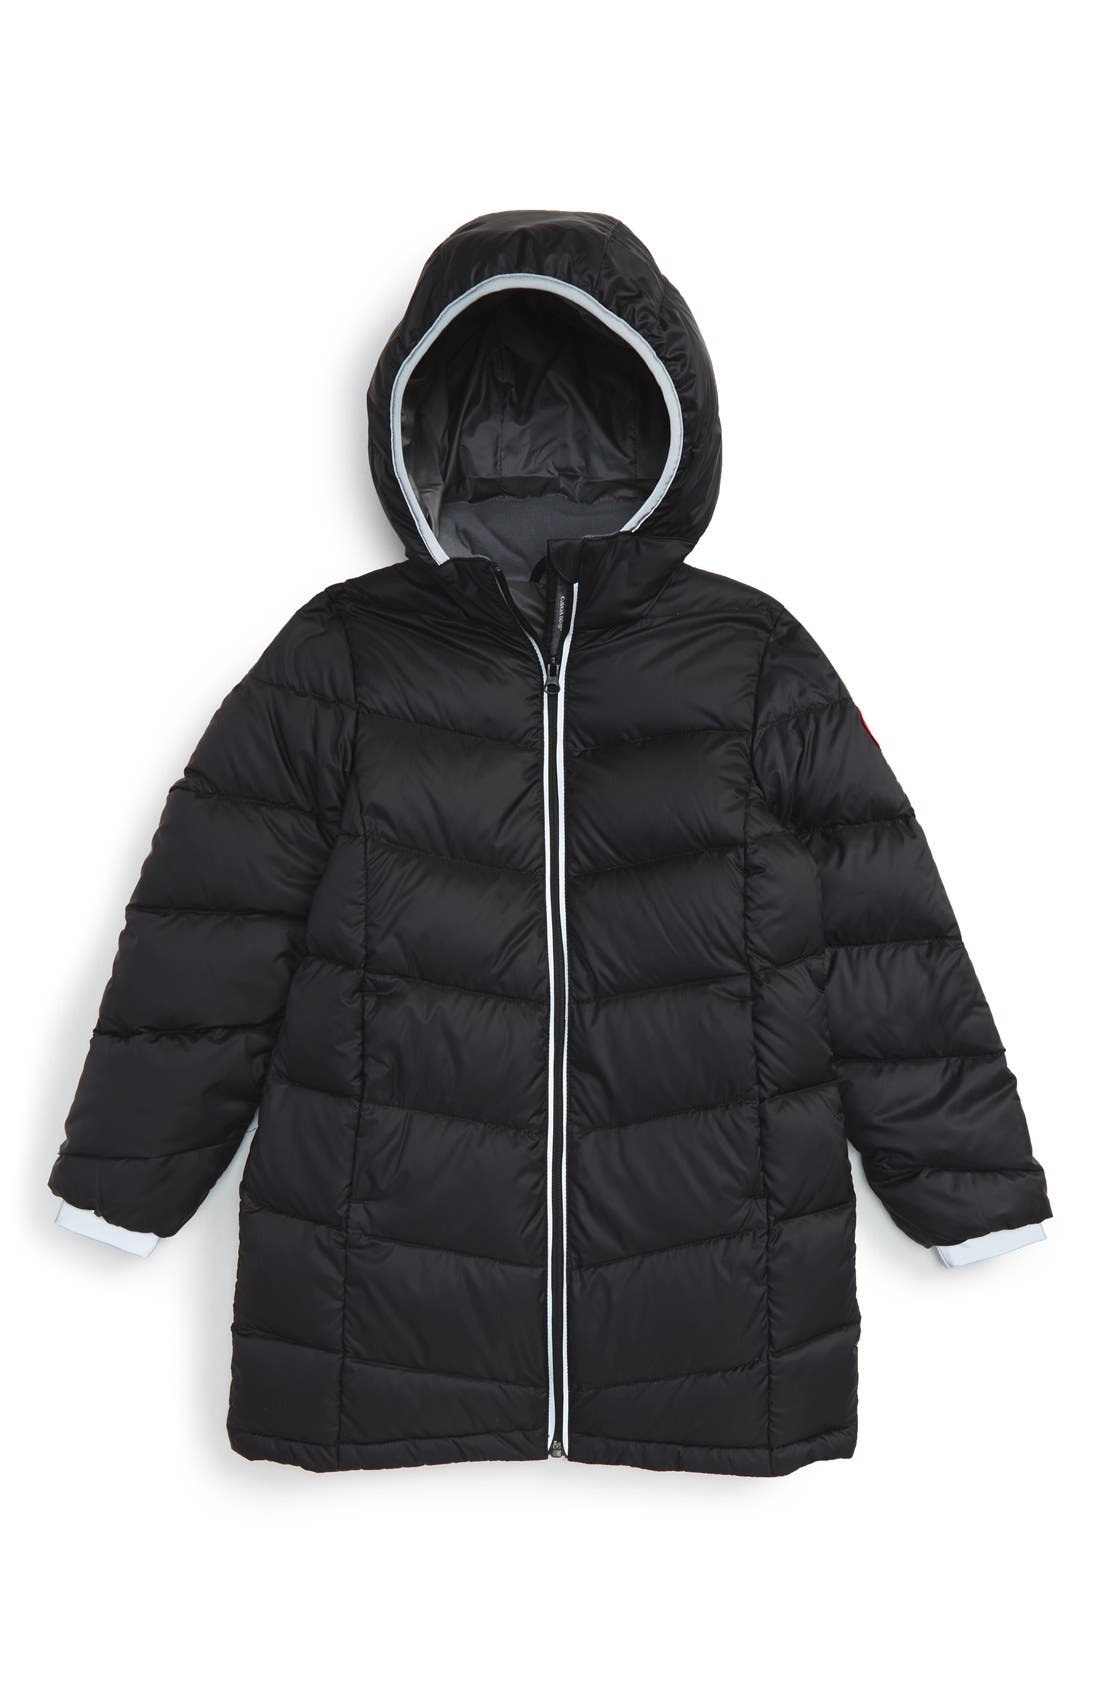 Alternate Image 1 Selected - Canada Goose 'Madeline' Hooded Down Jacket (Little Girls & Big Girls)